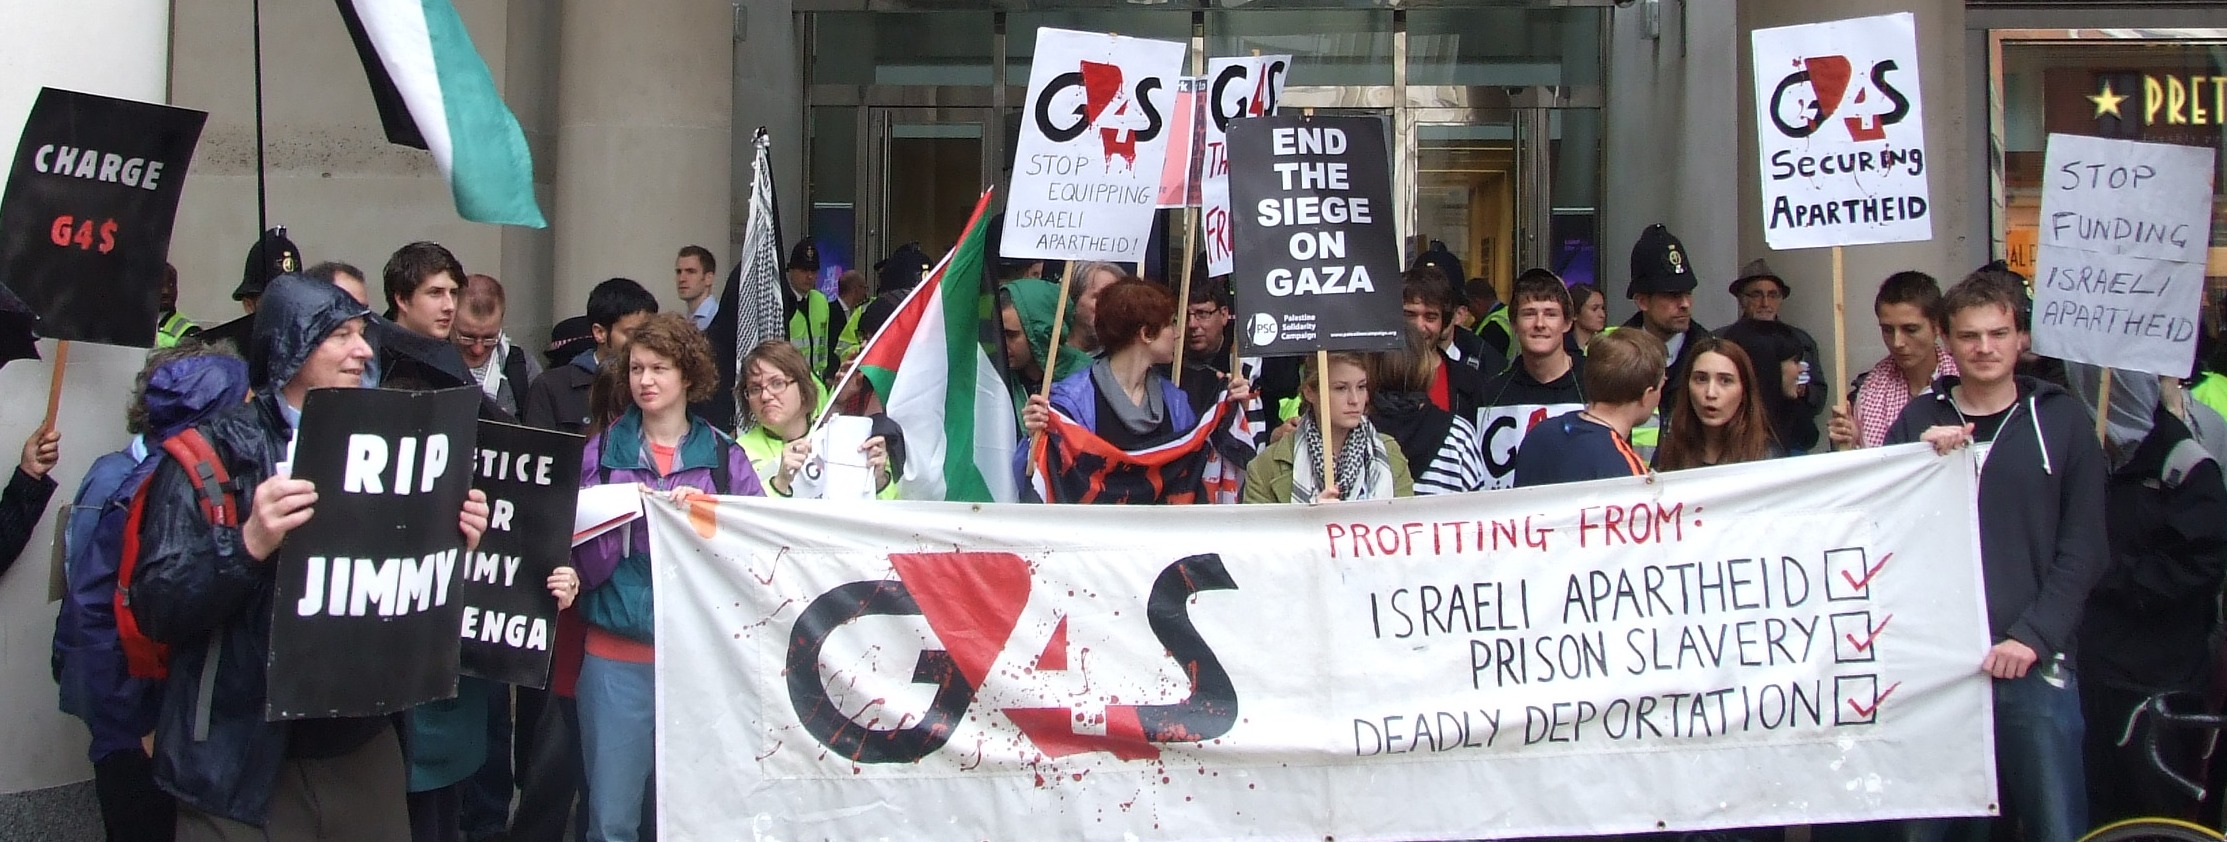 People protest G4S, a firm which manages security at Ofer Prison in the Occupied Palestine Territories, provides services and equipment to run checkpoints (Credit: StopG4S)